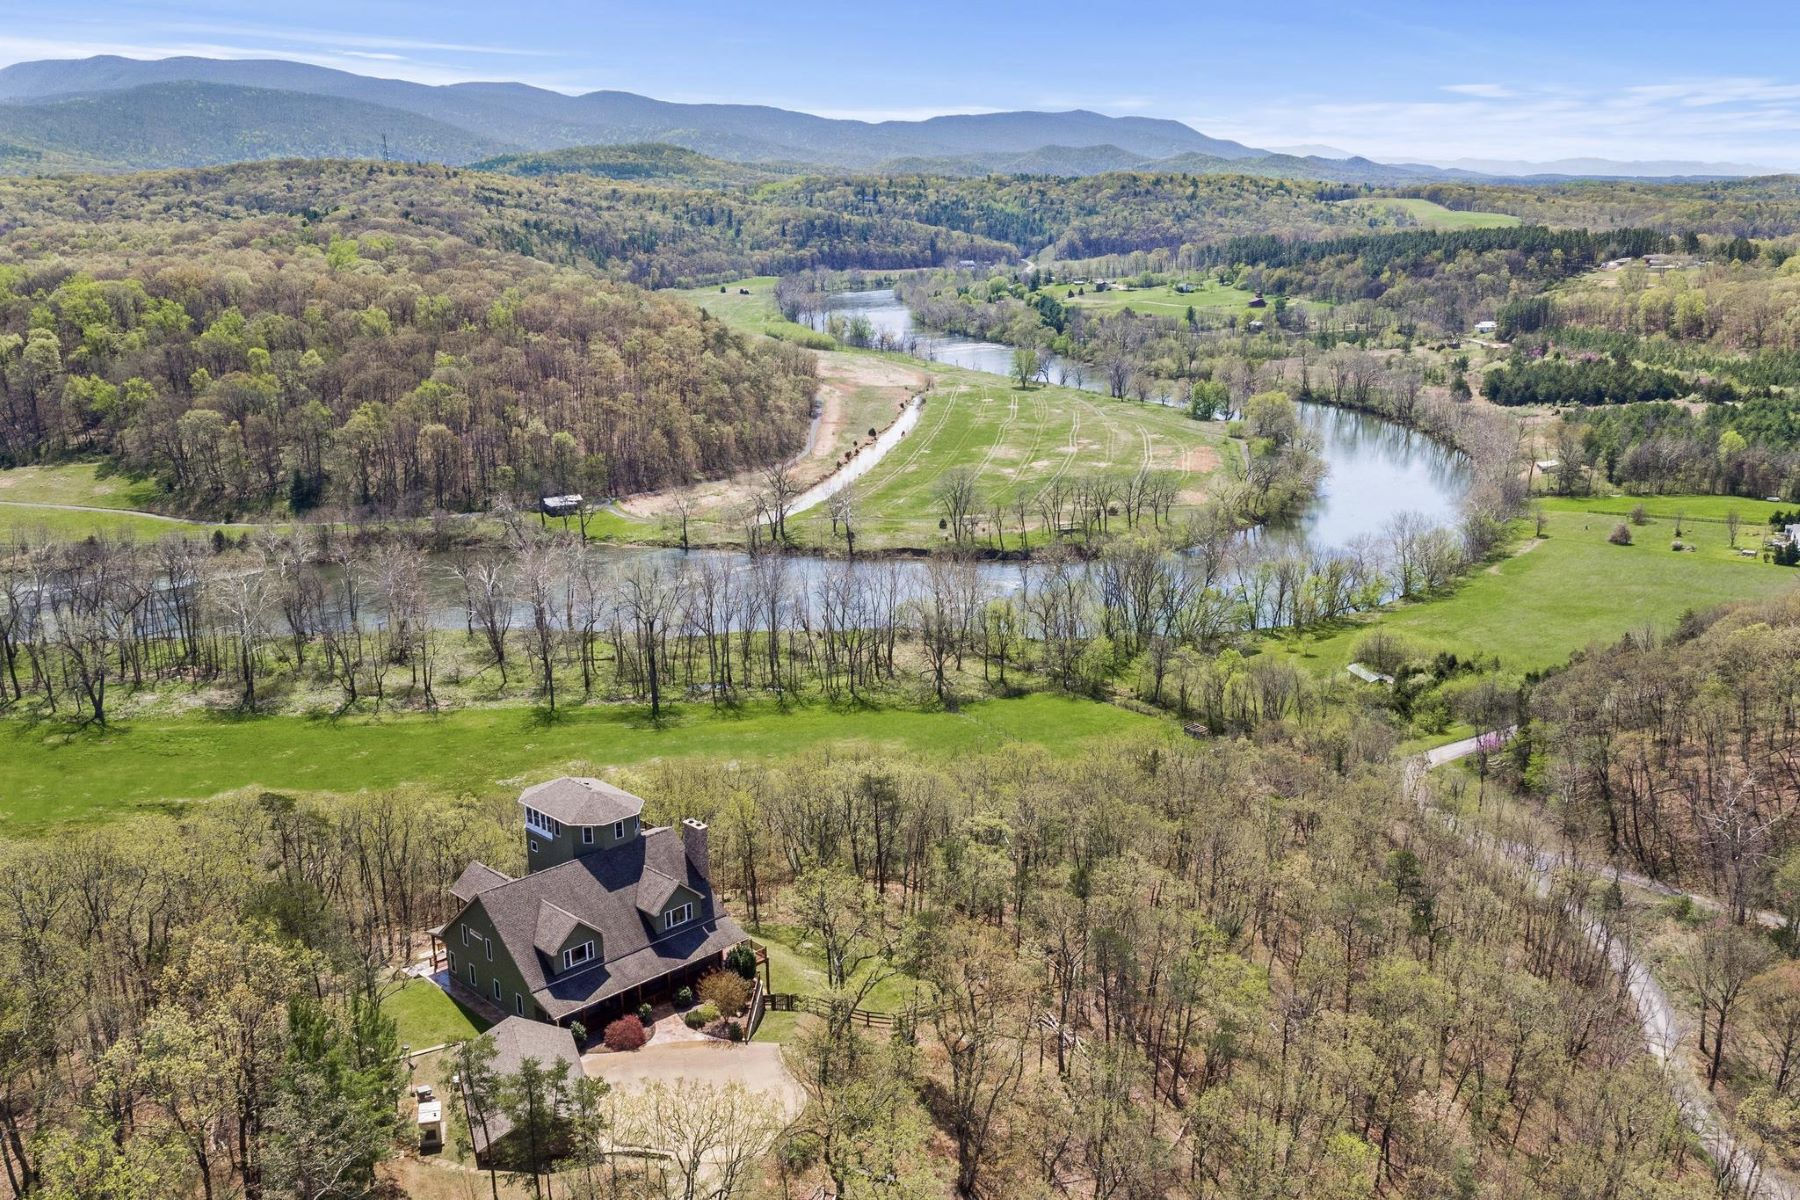 Single Family Homes for Sale at Bentonville, Virginia 22610 United States